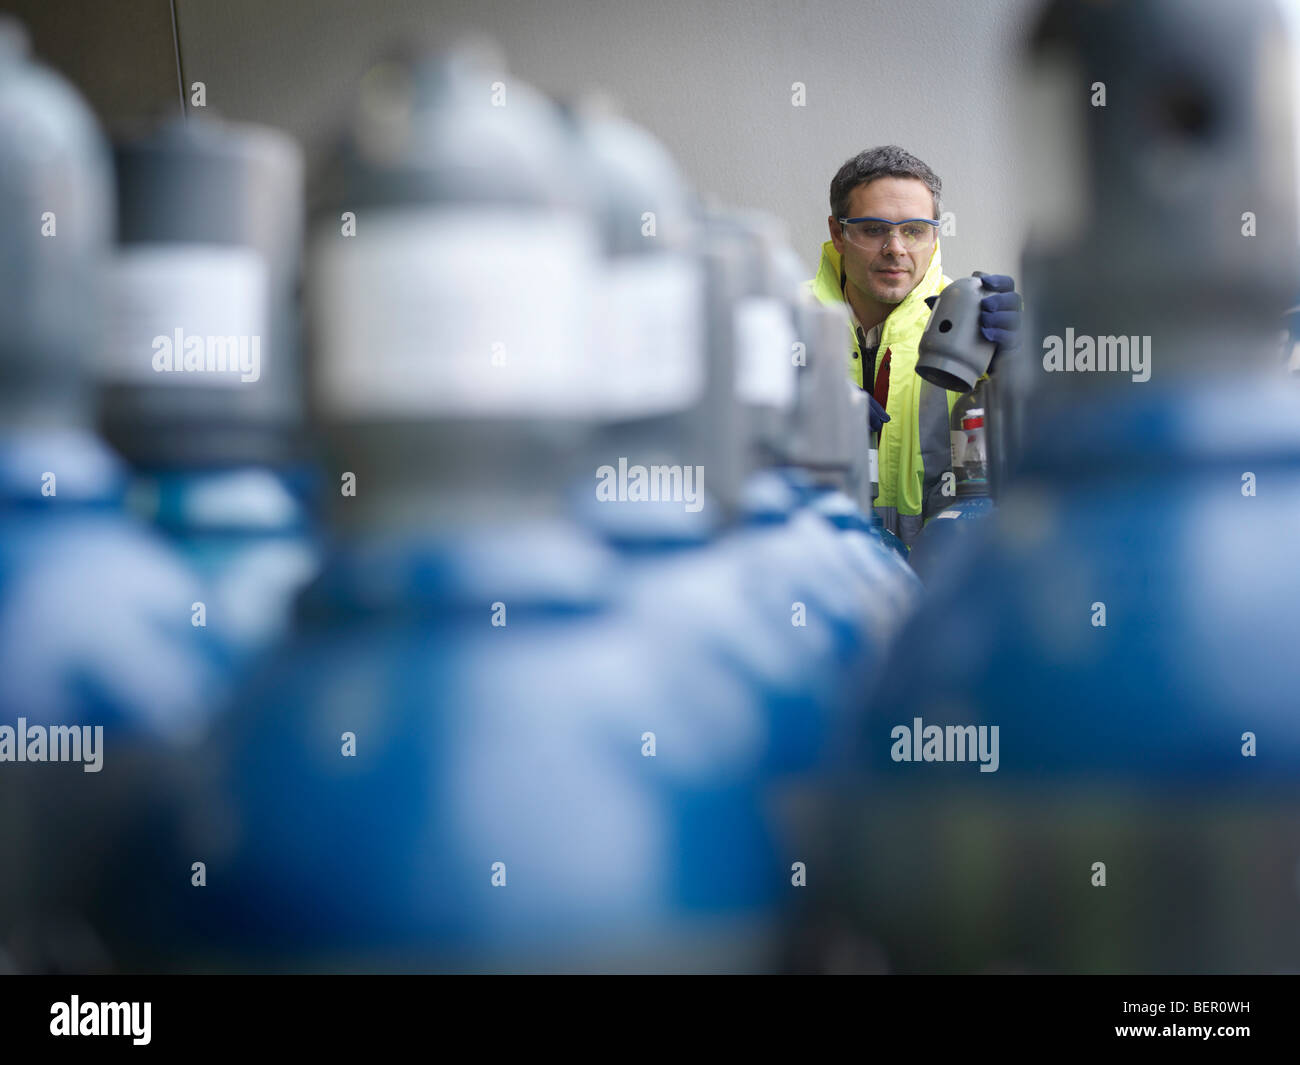 Port Worker Inspecting Gas Canisters - Stock Image